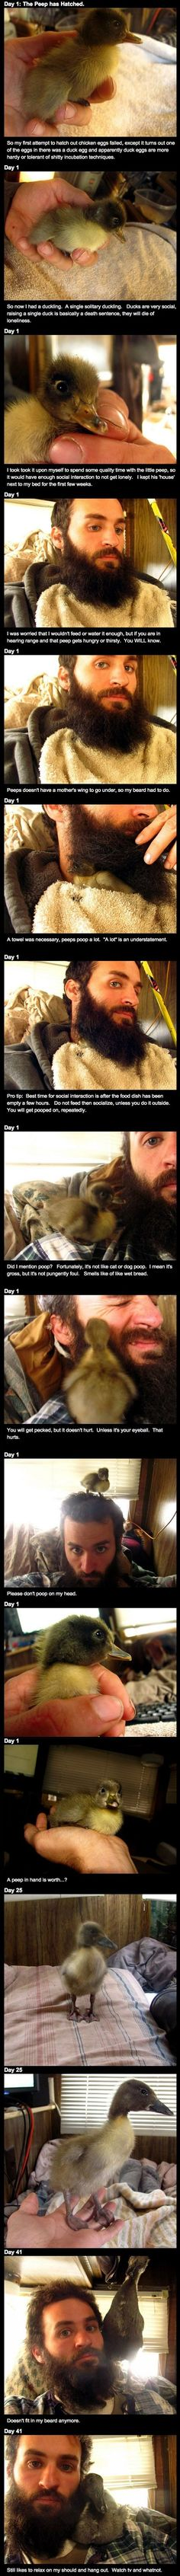 Baby duck takes shelter in awesome beard... Whaaaat?? Lol